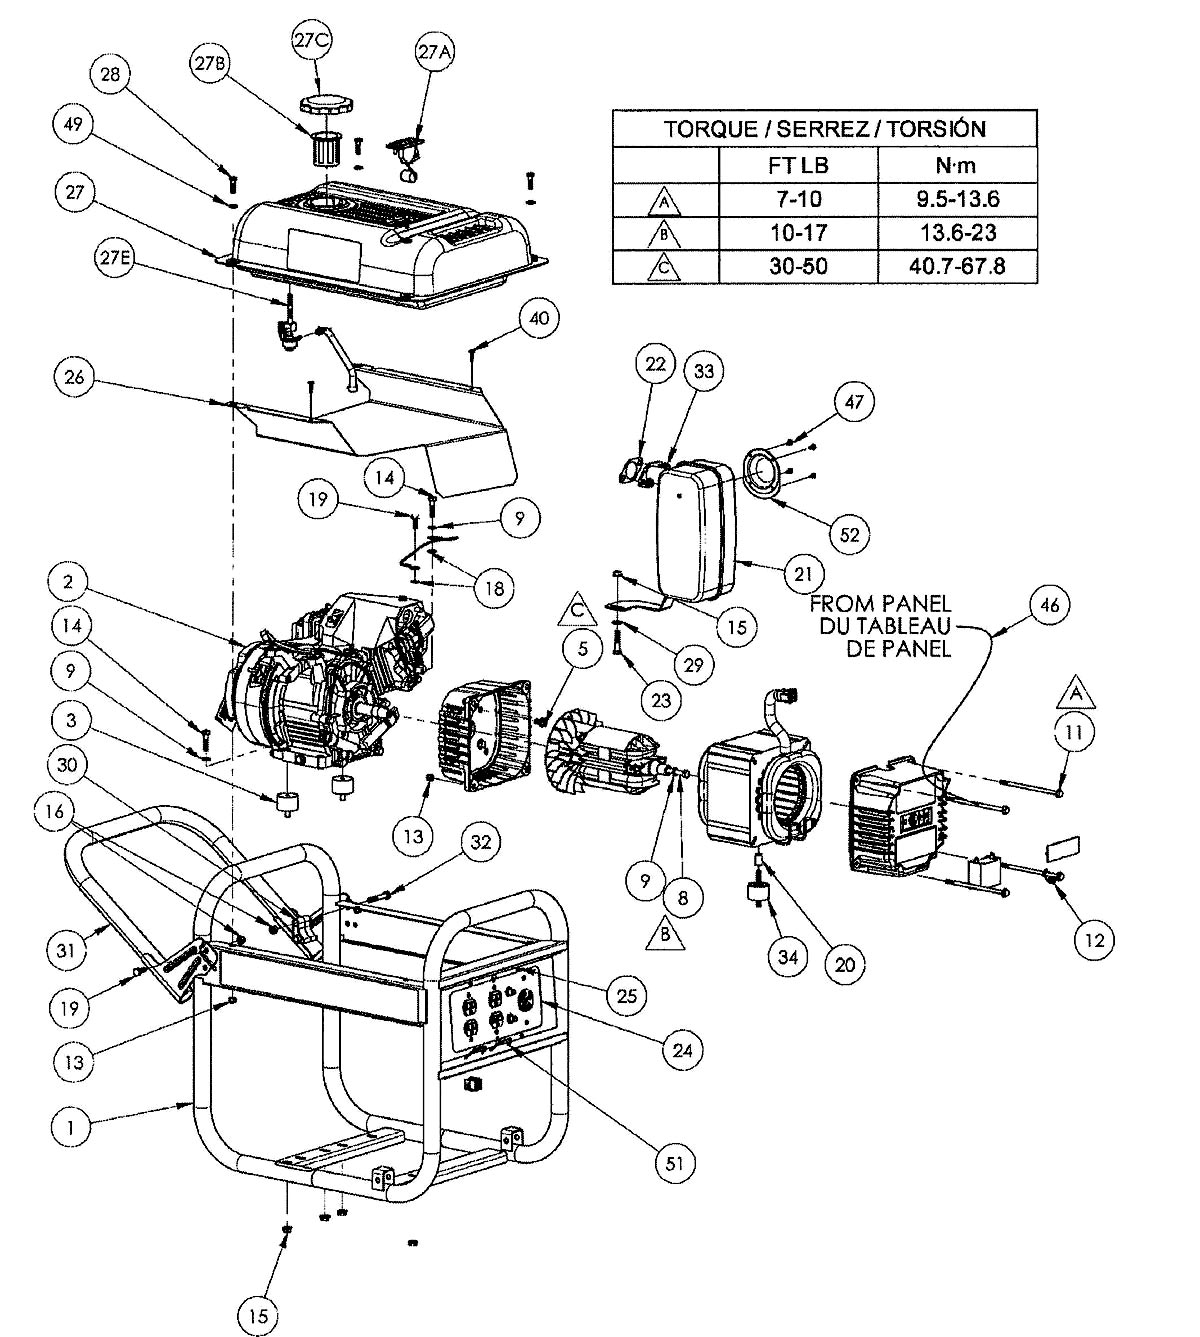 HG3510_parts hg3510 homelite generator parts Craftsman Riding Mower Wiring Diagram at fashall.co